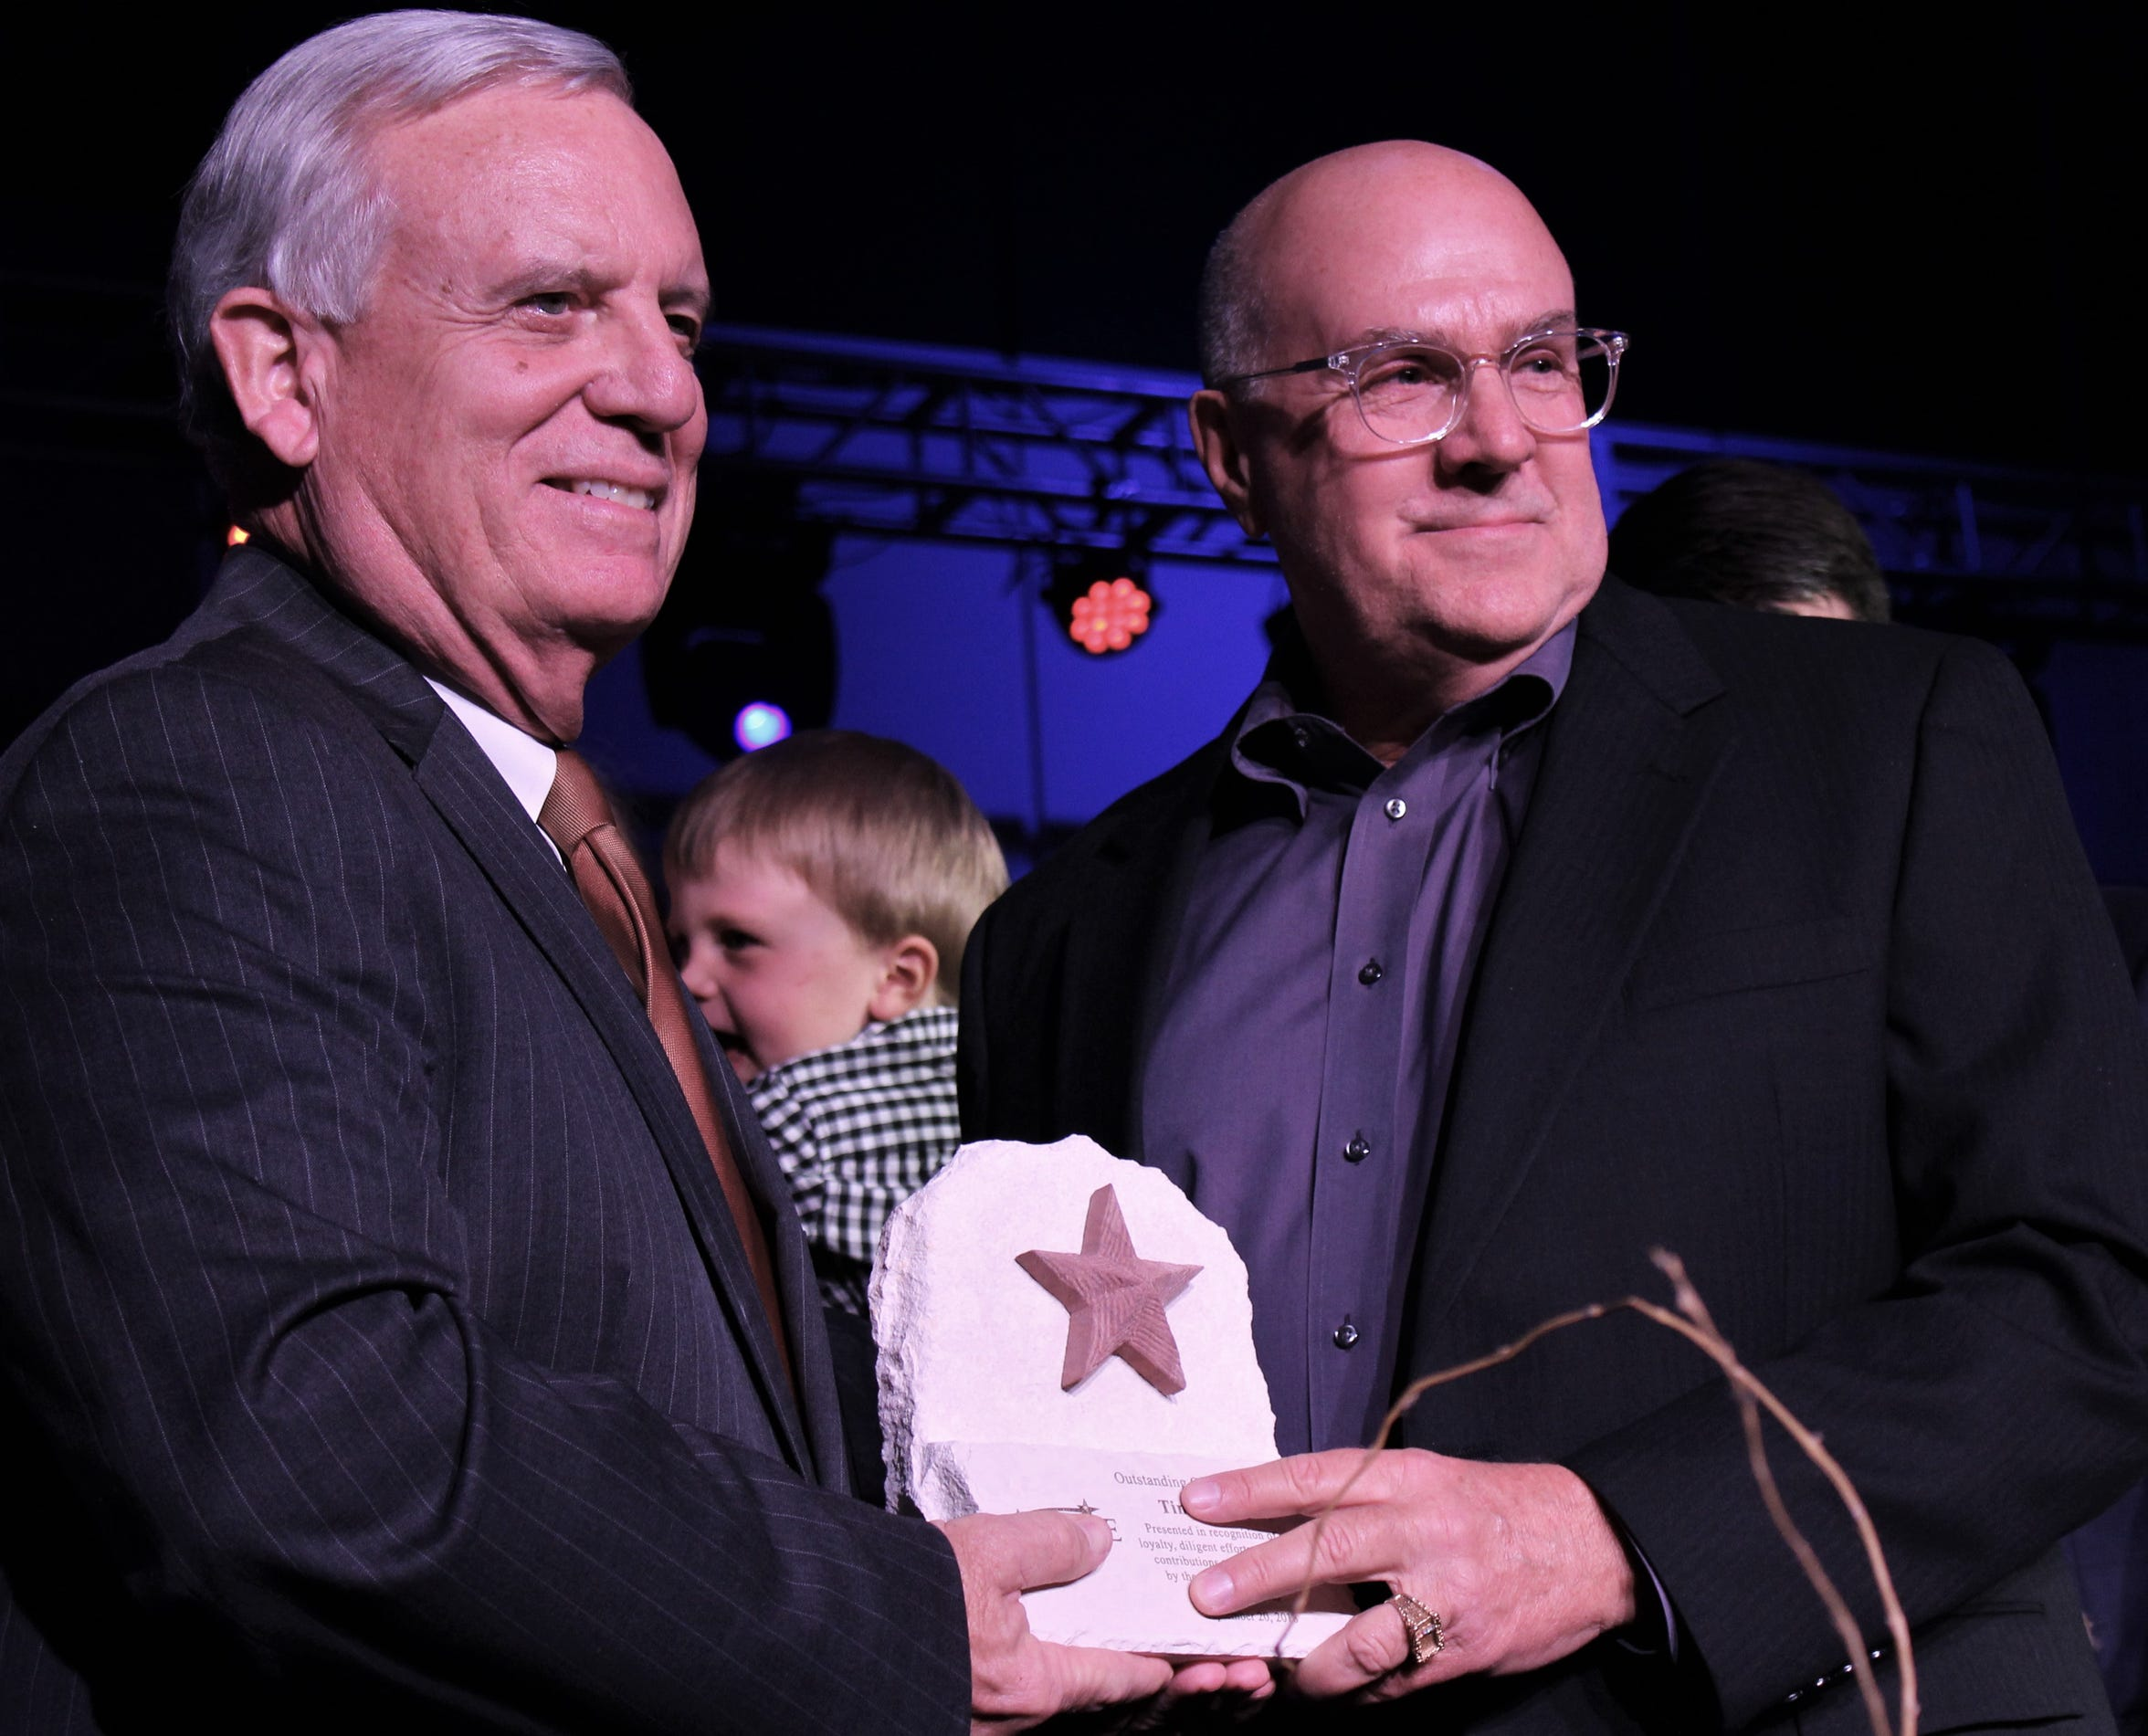 Tim Lancaster, right, the 2018 Outstanding Citizen of the Year Award winner, shared the stage with 2017 winner Norm Archibald. Both are employed by Hendrick Health System, giving the large Abilene employer back-to-back wins.